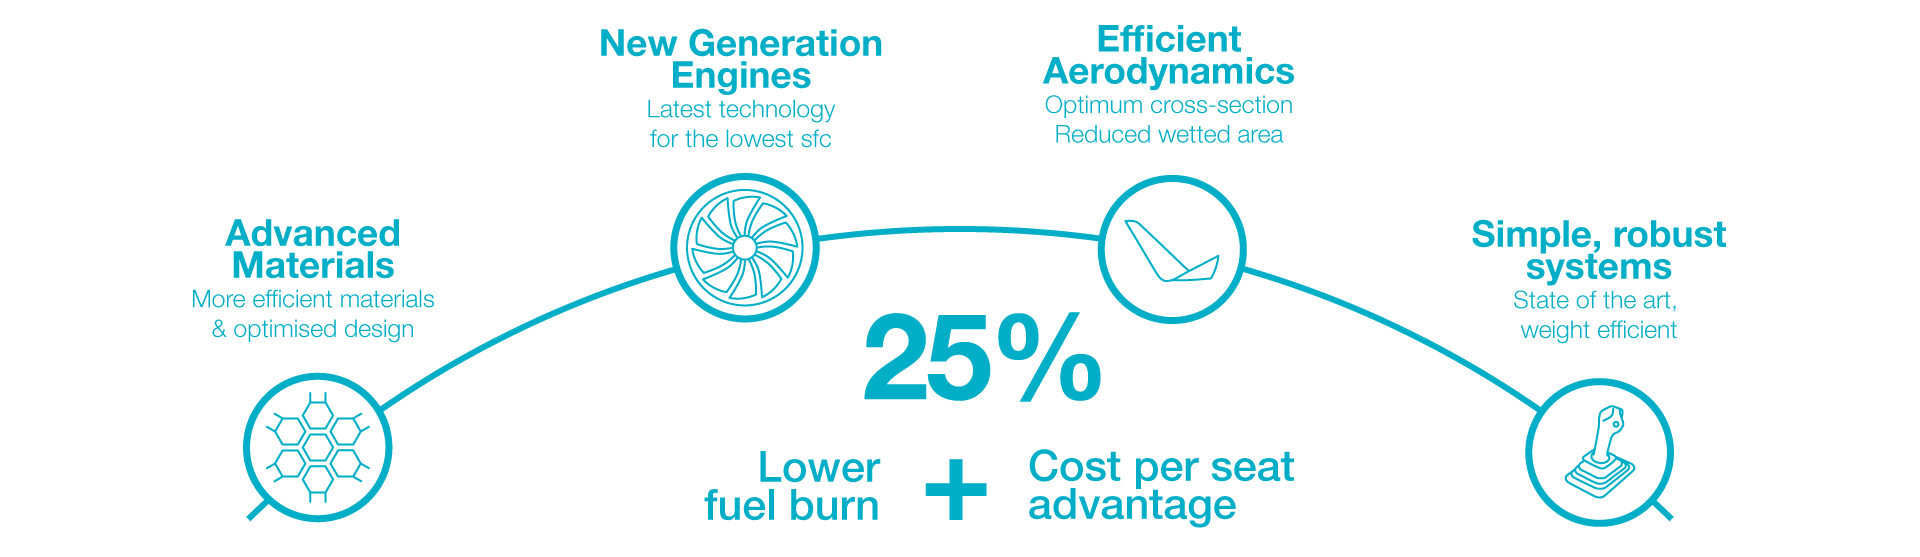 Lower Fuel Burn And Cost Per Seat 3